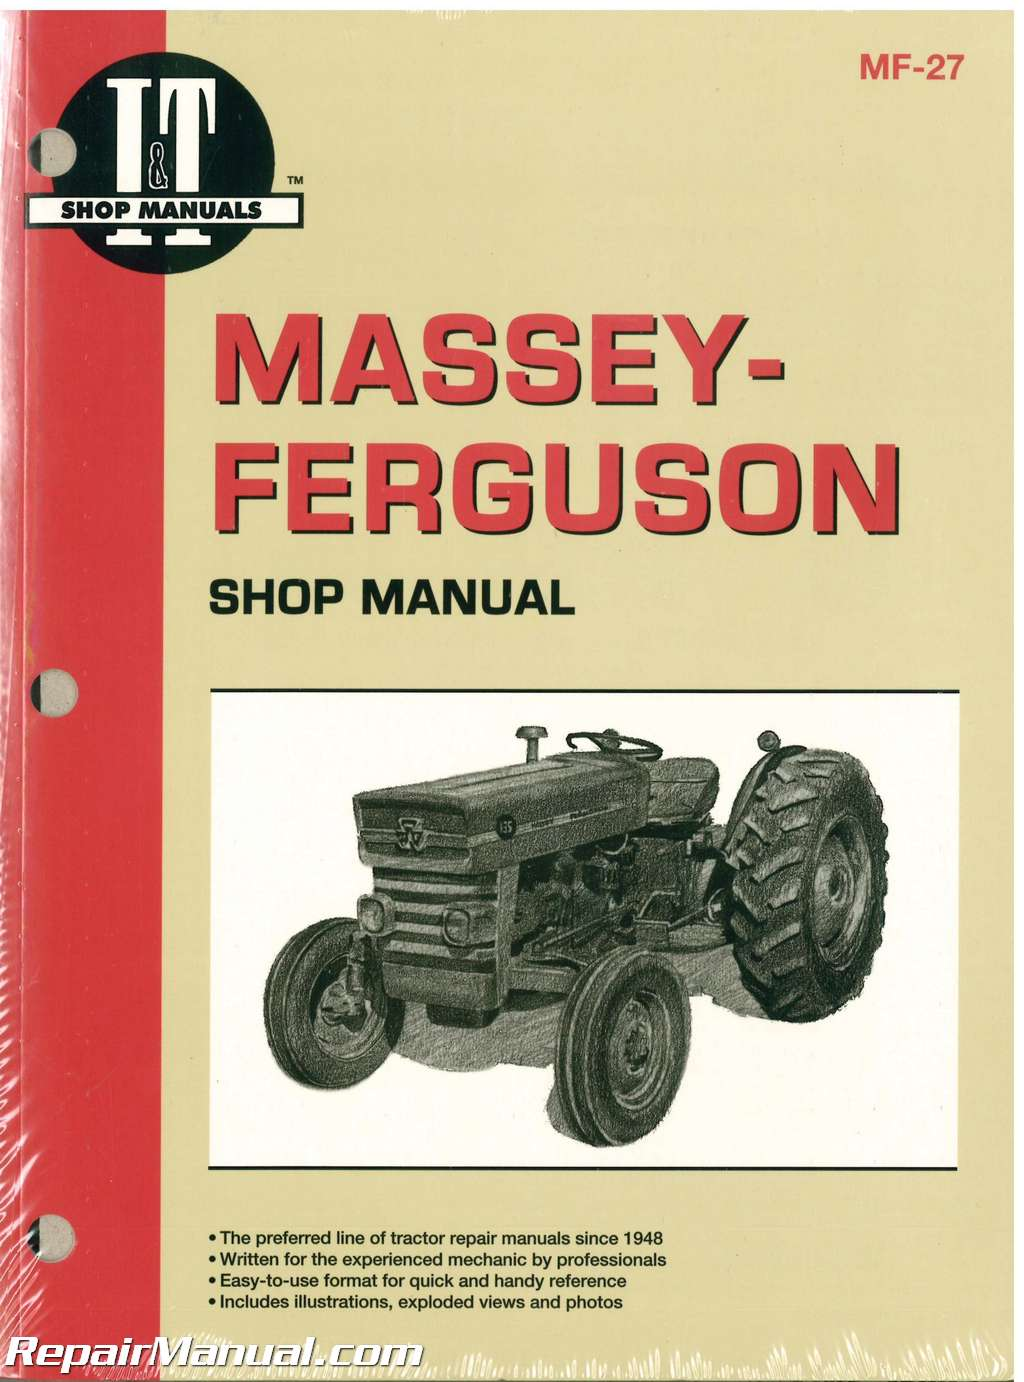 massey ferguson 135 wiring diagram solidfonts massey ferguson 135 wiring harness solidfonts